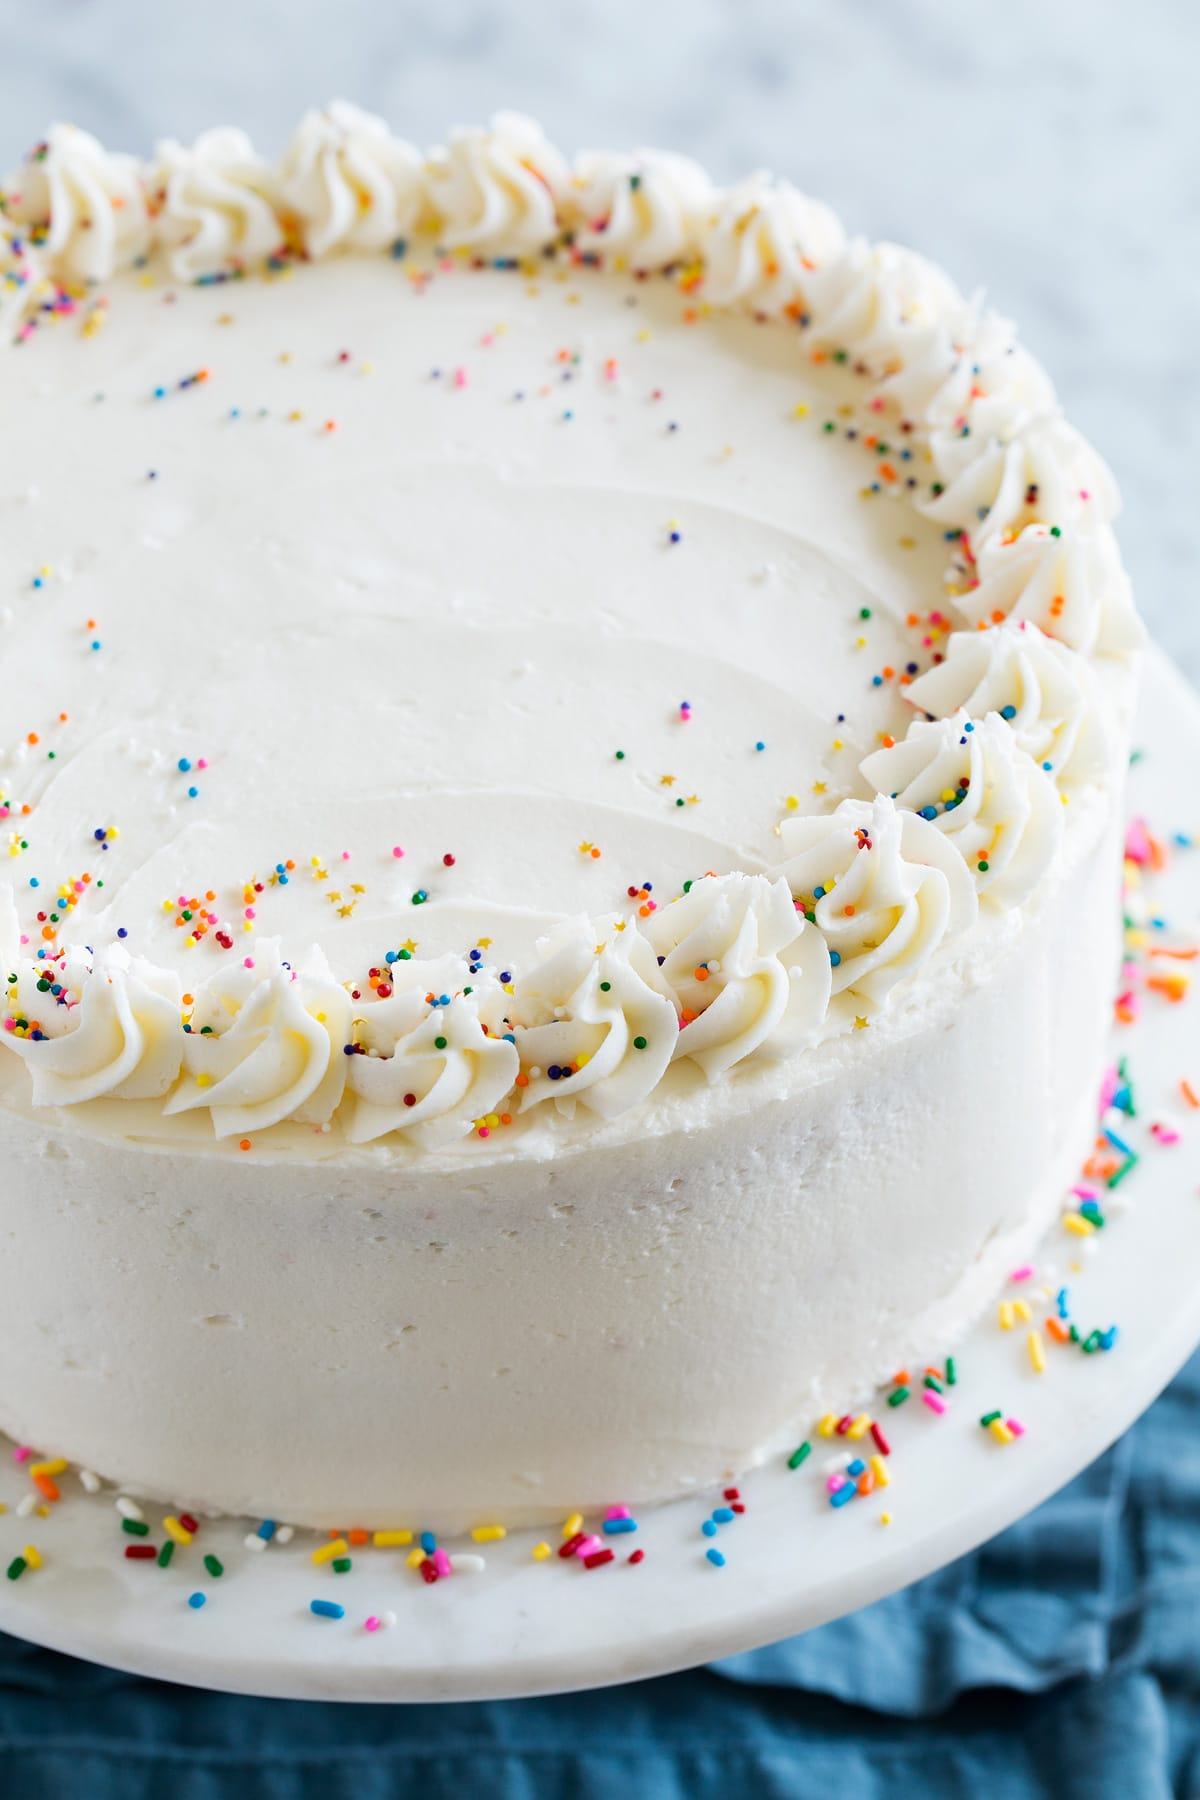 Close up image of a whole funfetti birthday cake